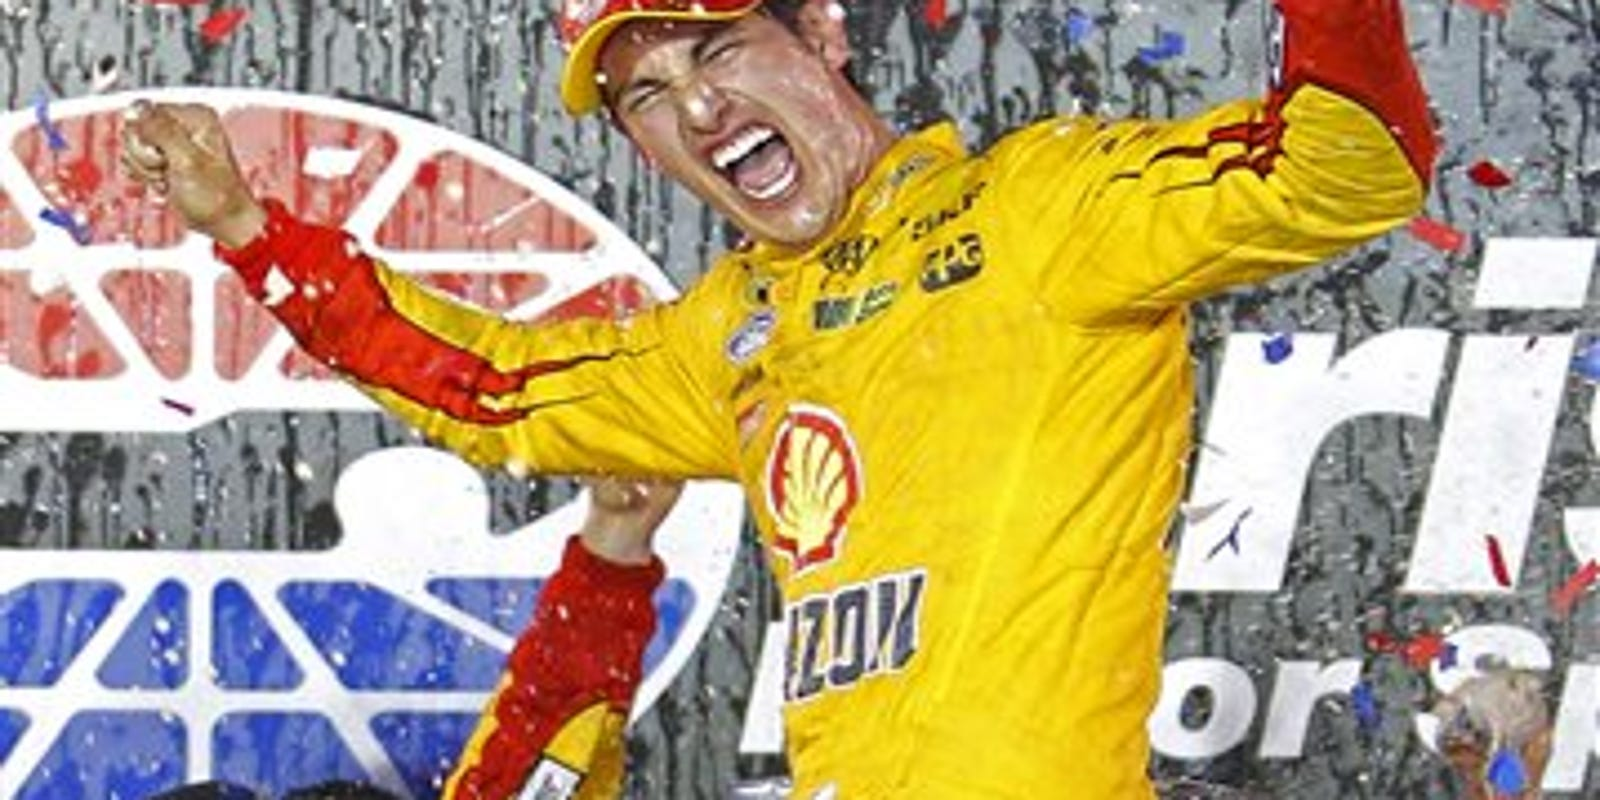 best sprint cup drivers at bristol